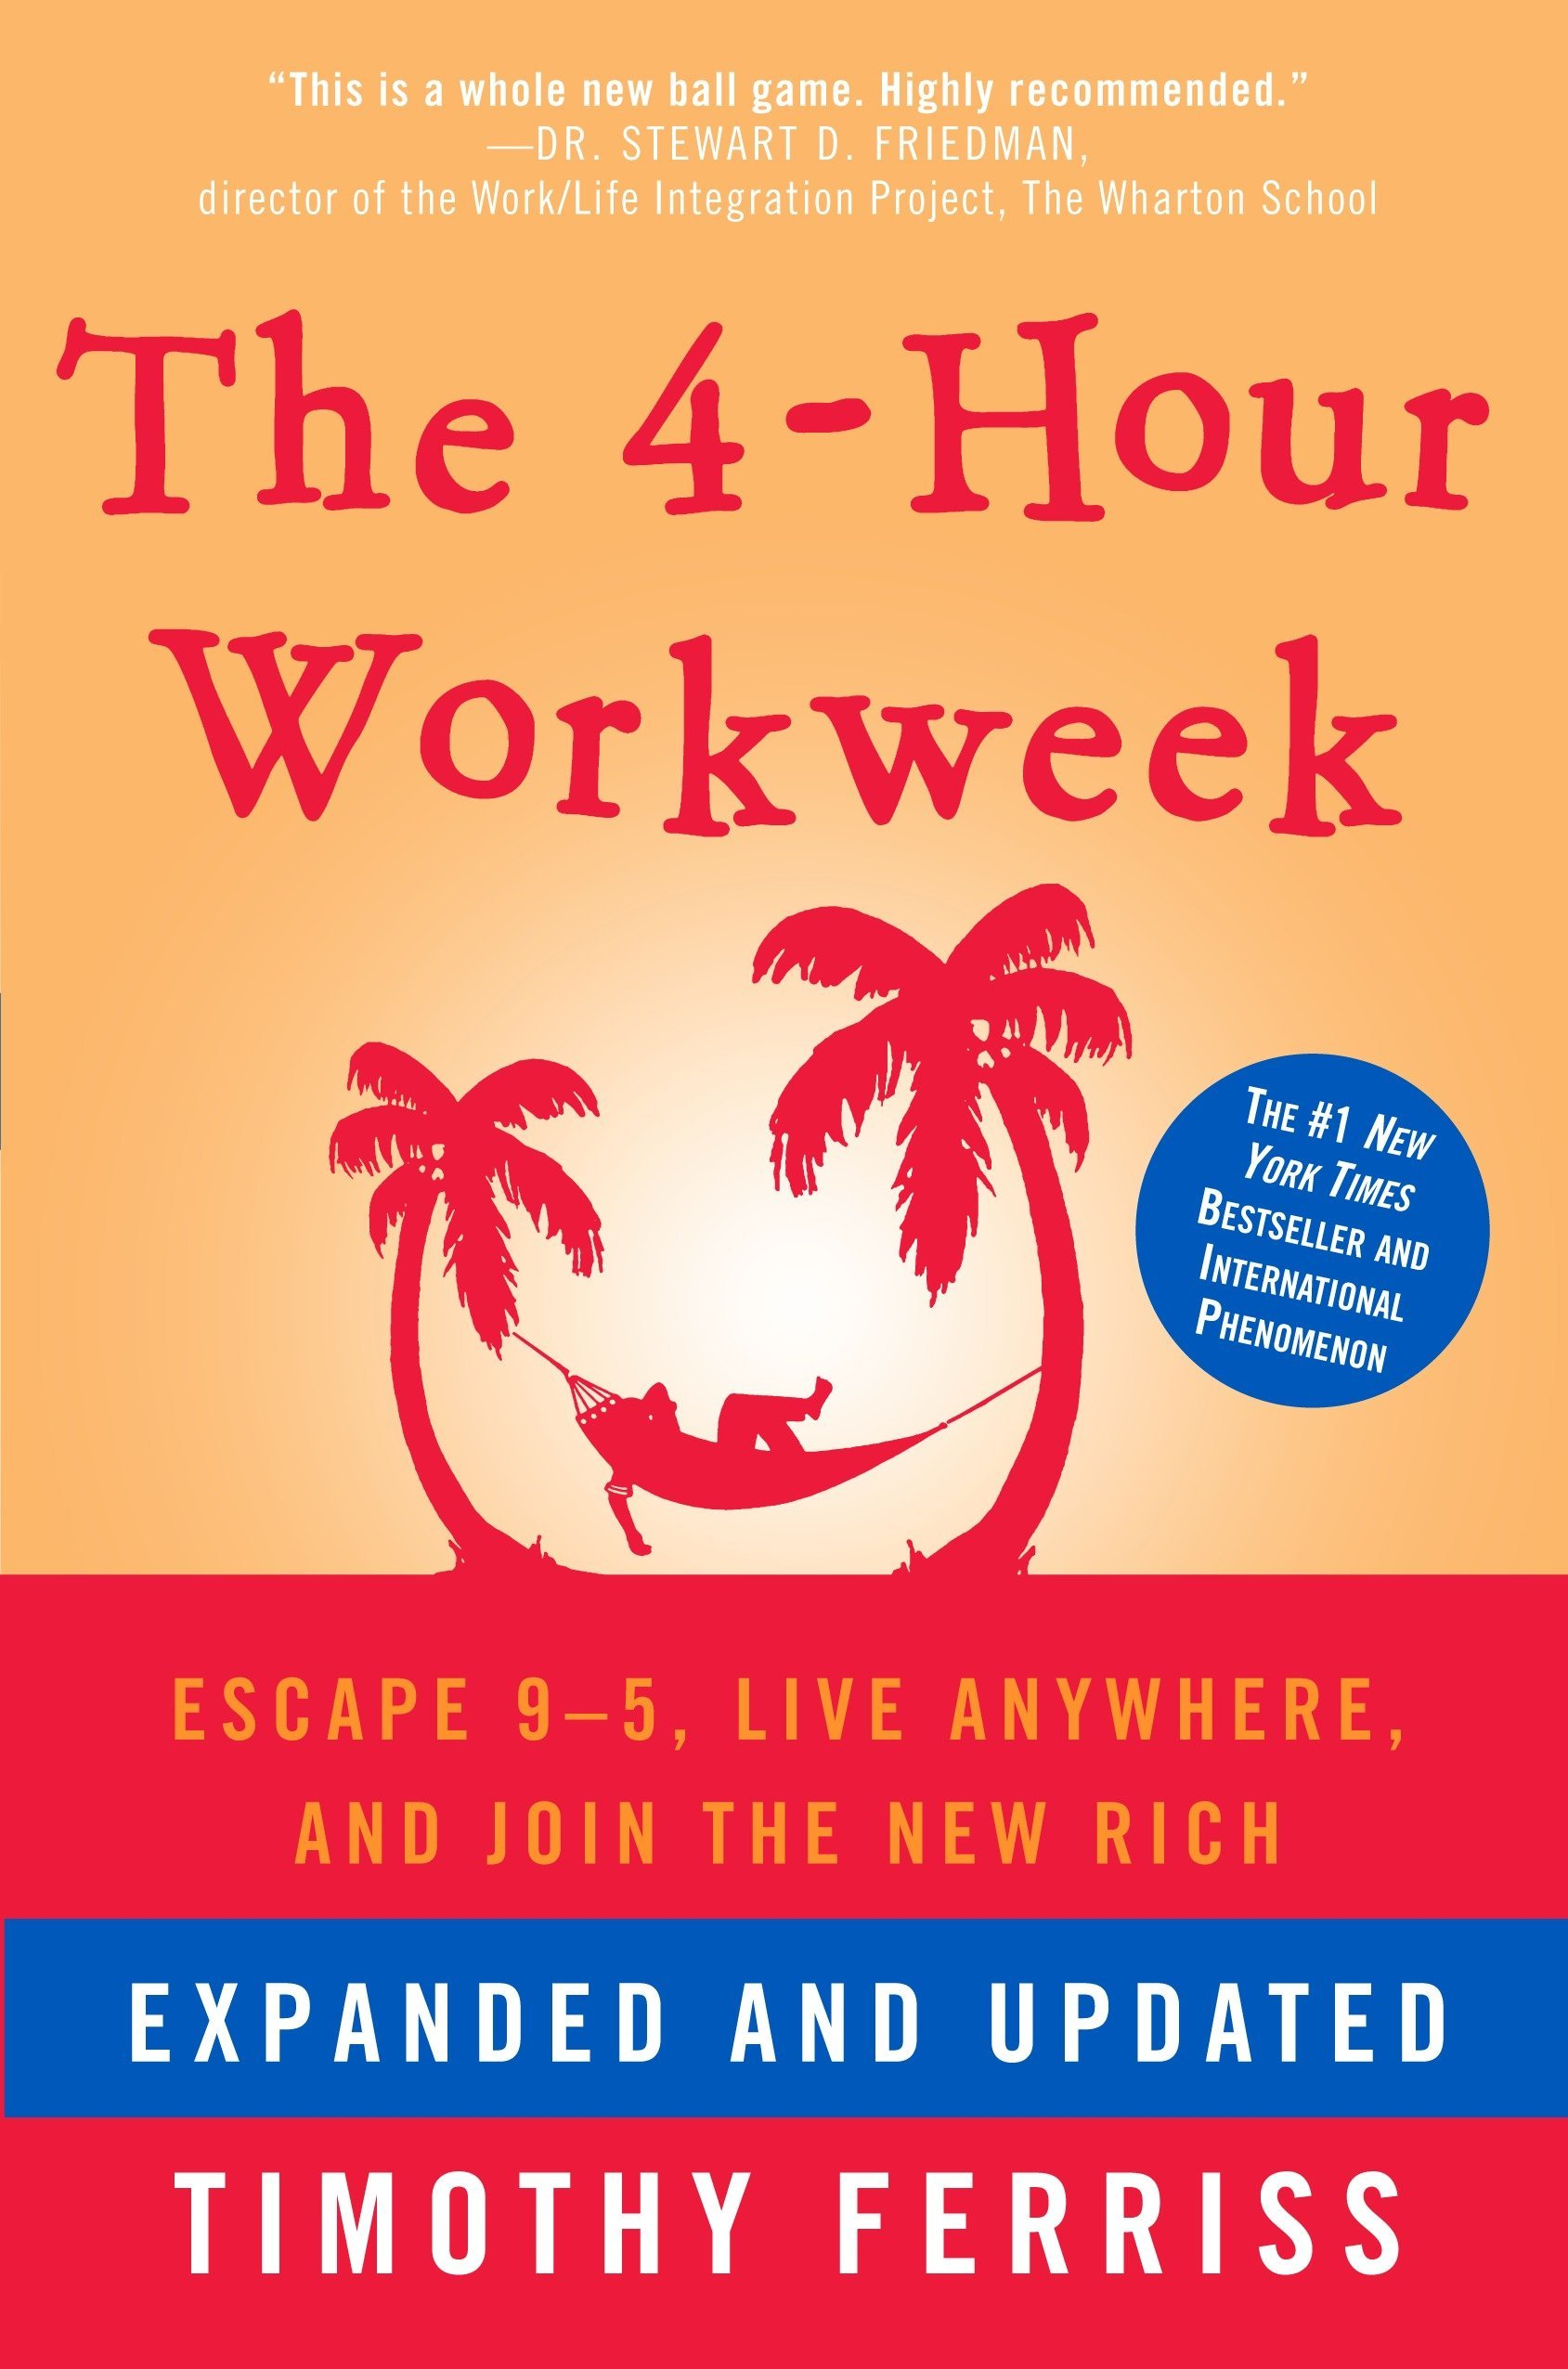 Recommendation - The 4-Hour Workweek